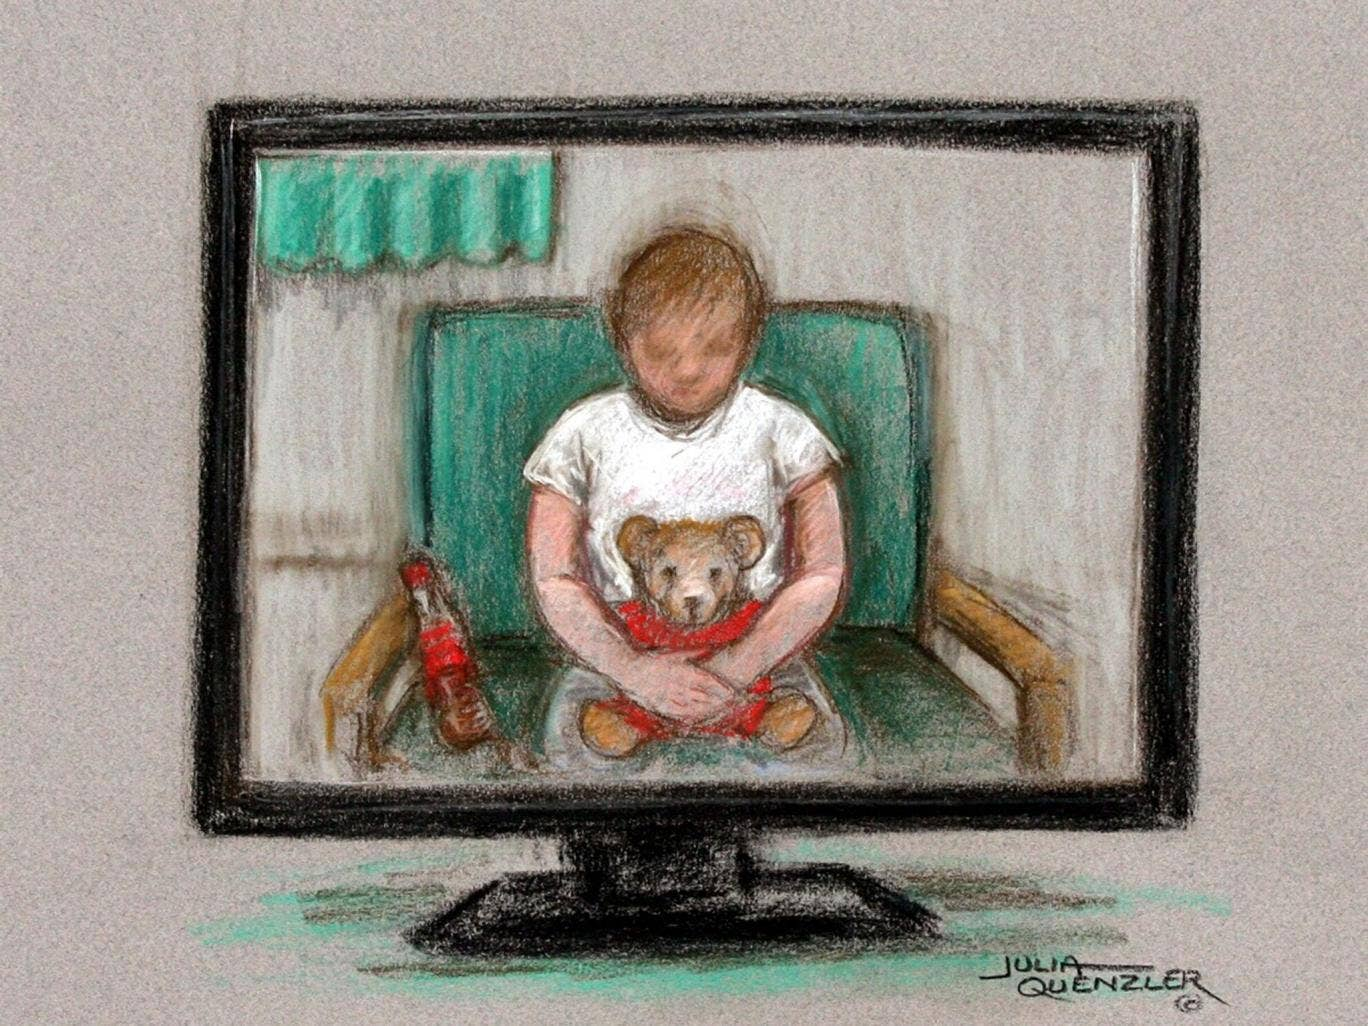 A court artist's portrayal of the ordeal of a child sex abuse victim